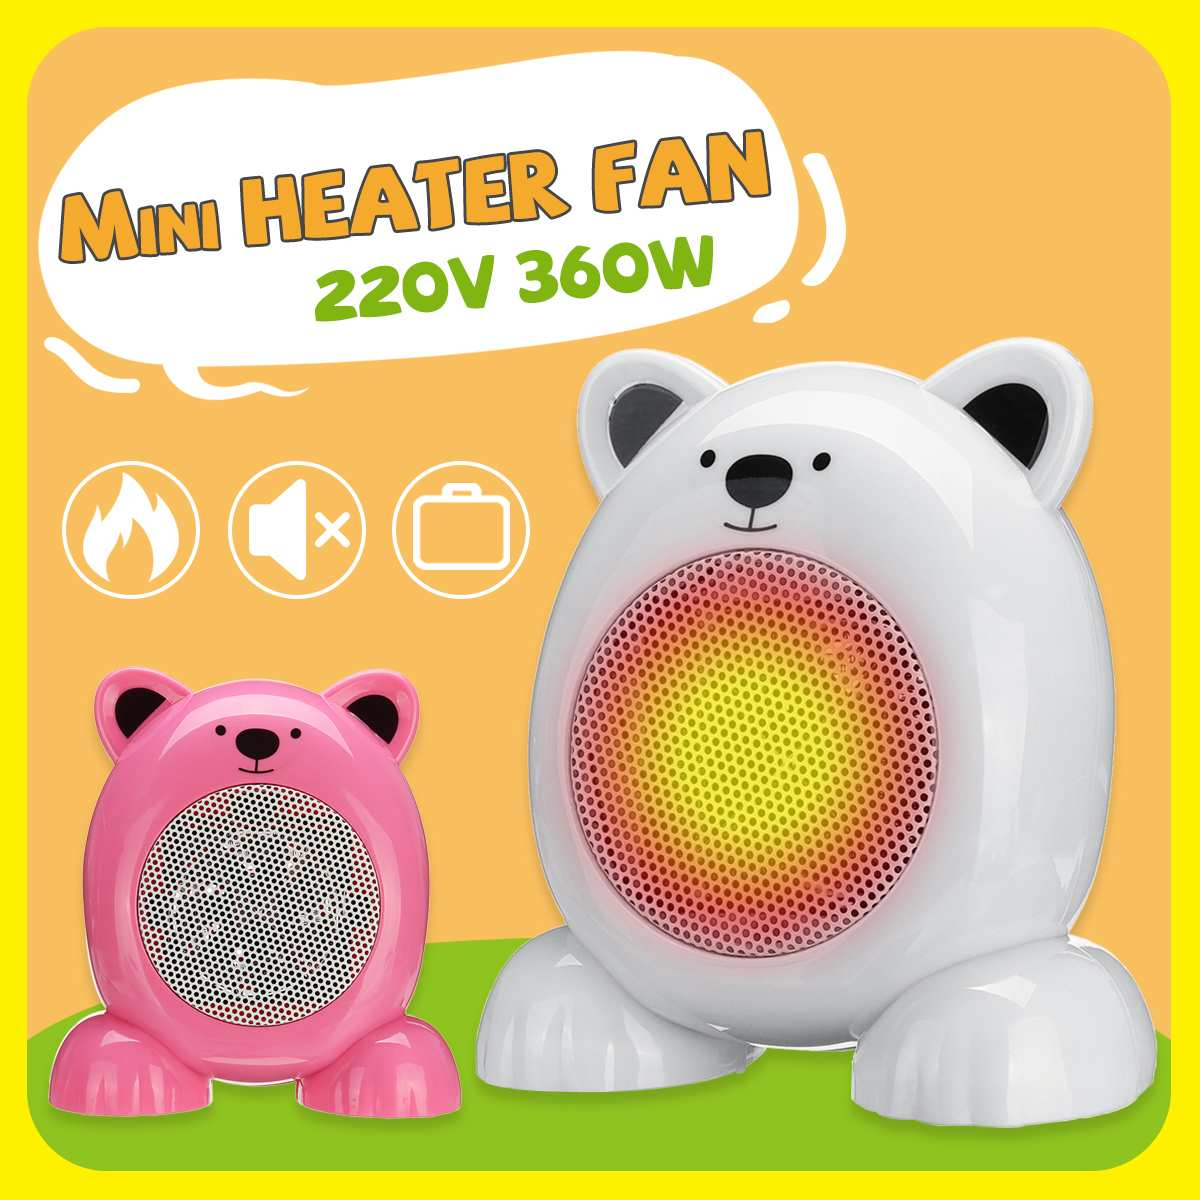 220v 360w Portable Electric Air Heater Mini Home Handy Heater Warm Fan PTC Heating Desktop For Winter Household Bathroom220v 360w Portable Electric Air Heater Mini Home Handy Heater Warm Fan PTC Heating Desktop For Winter Household Bathroom